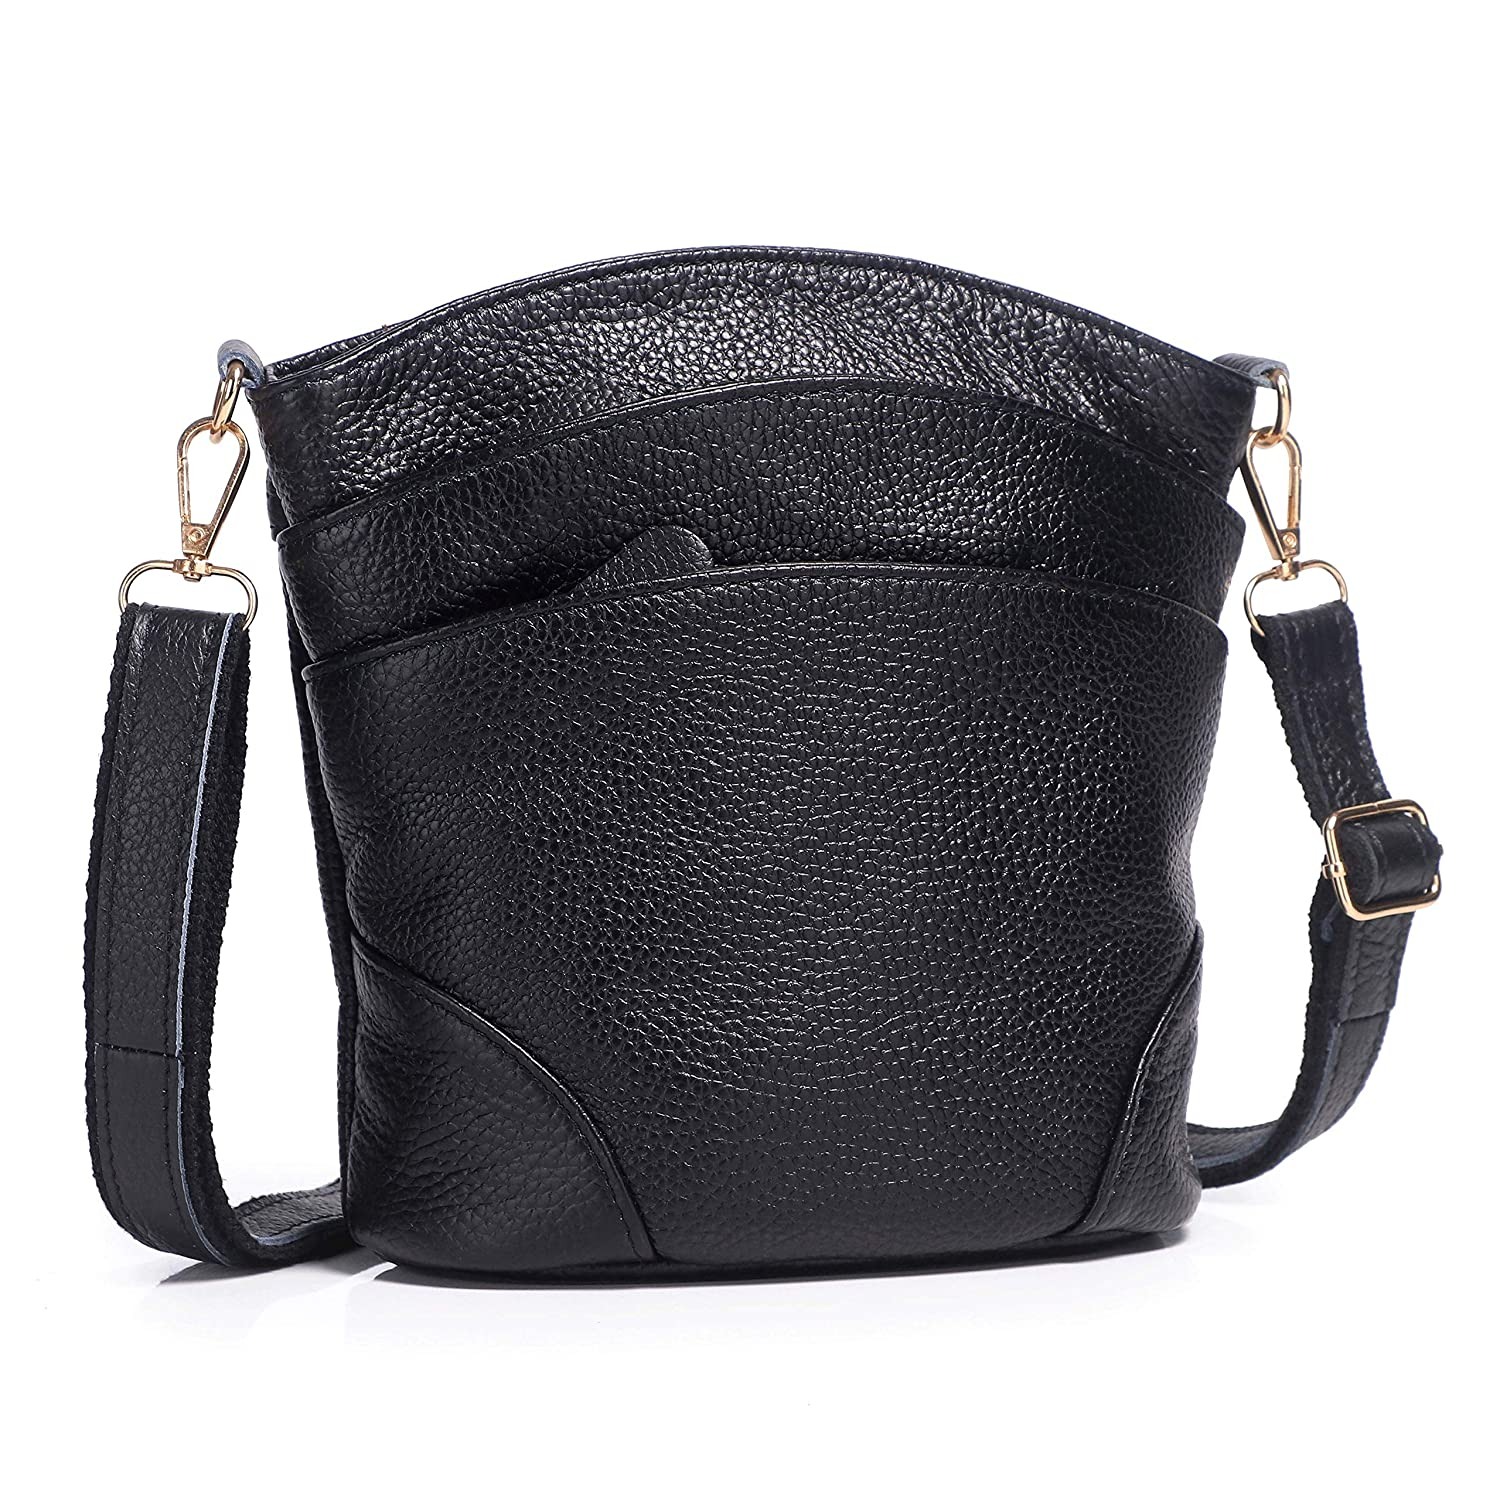 8d274b7164 Leather Crossbody Bags for Women